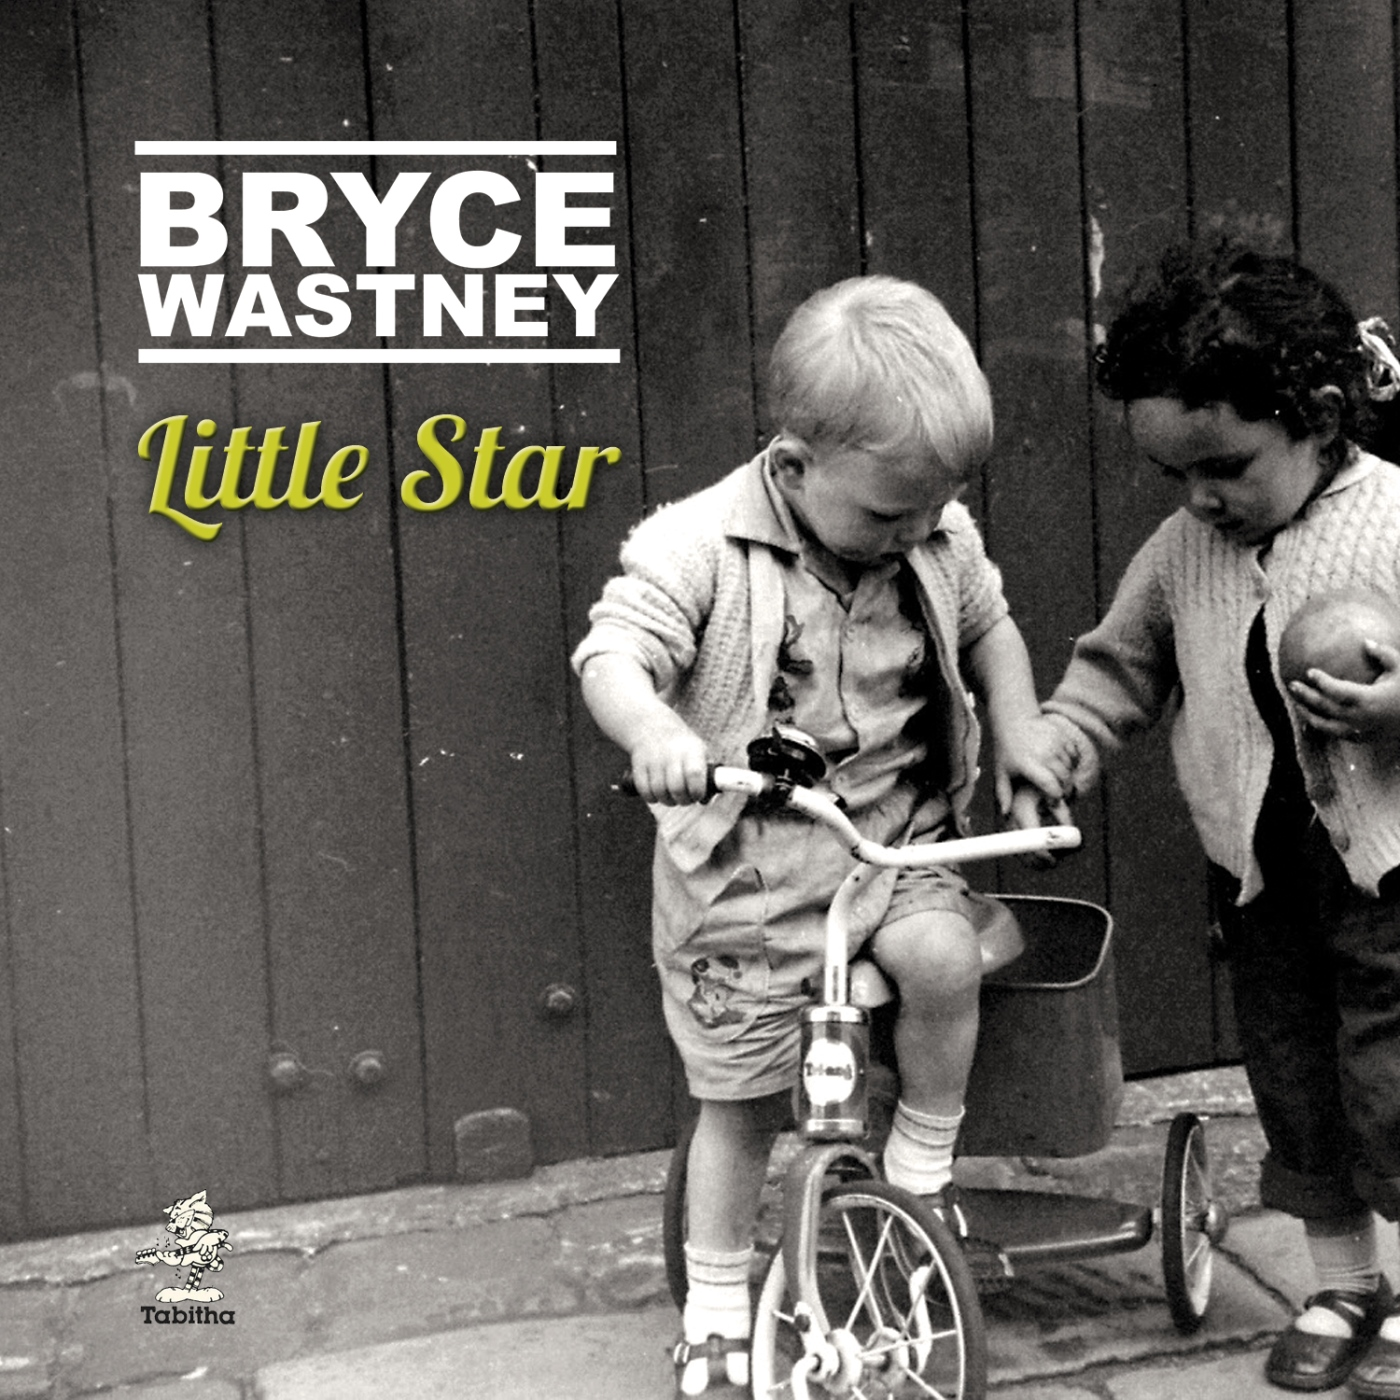 Bryce Wastney - Little star